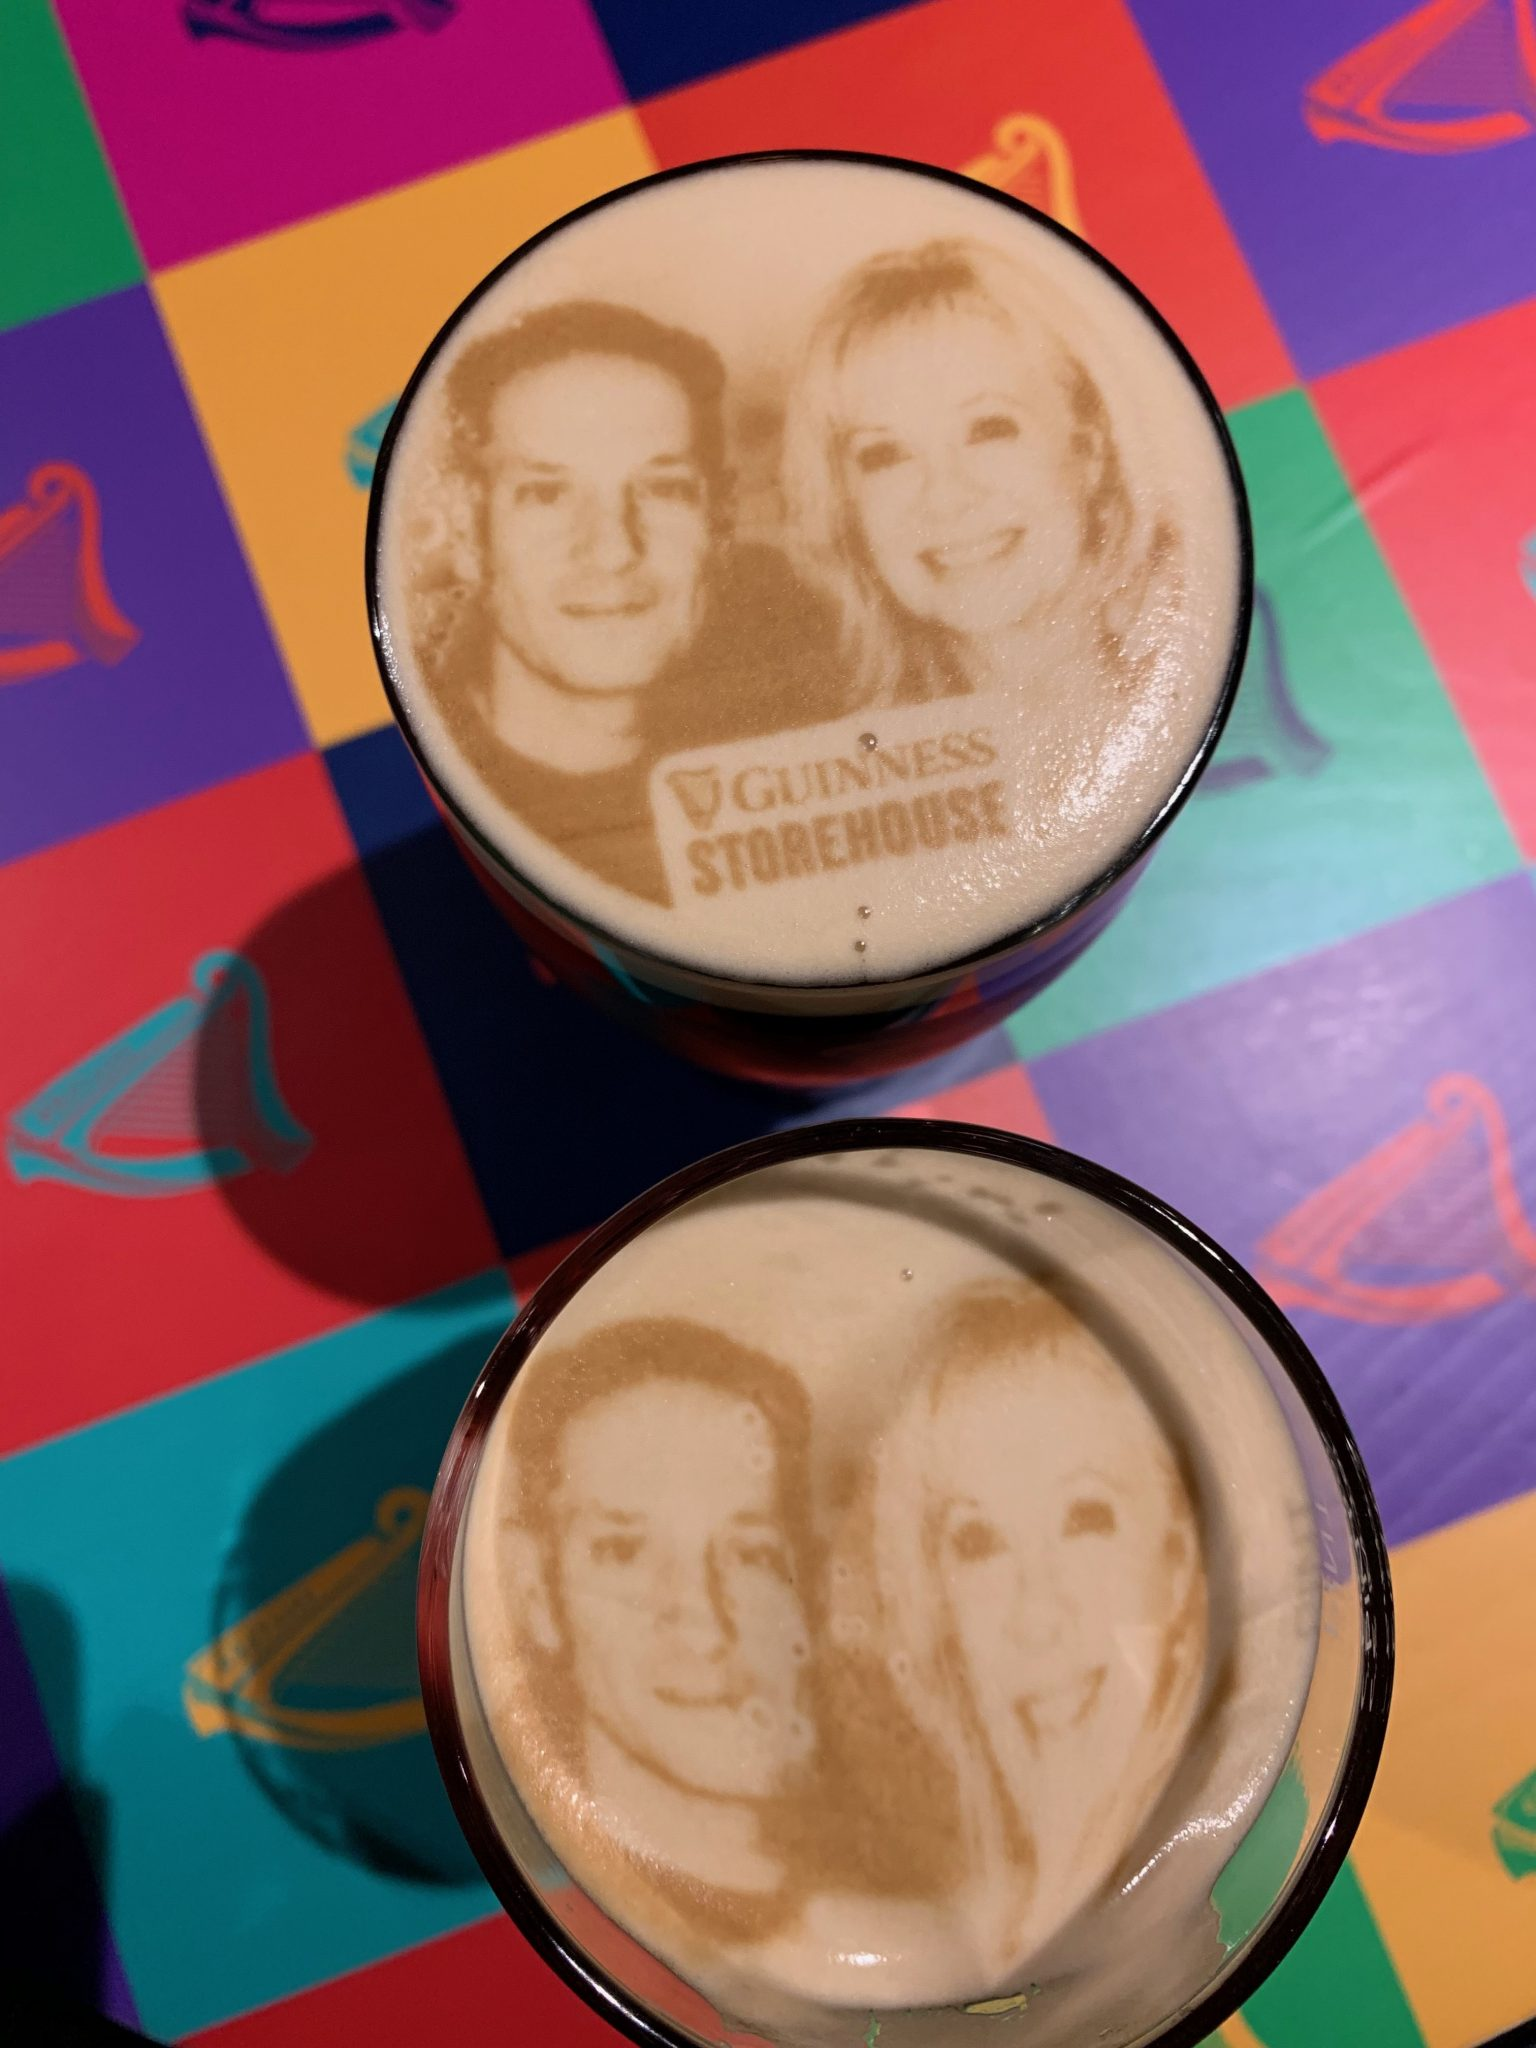 Guinness faces